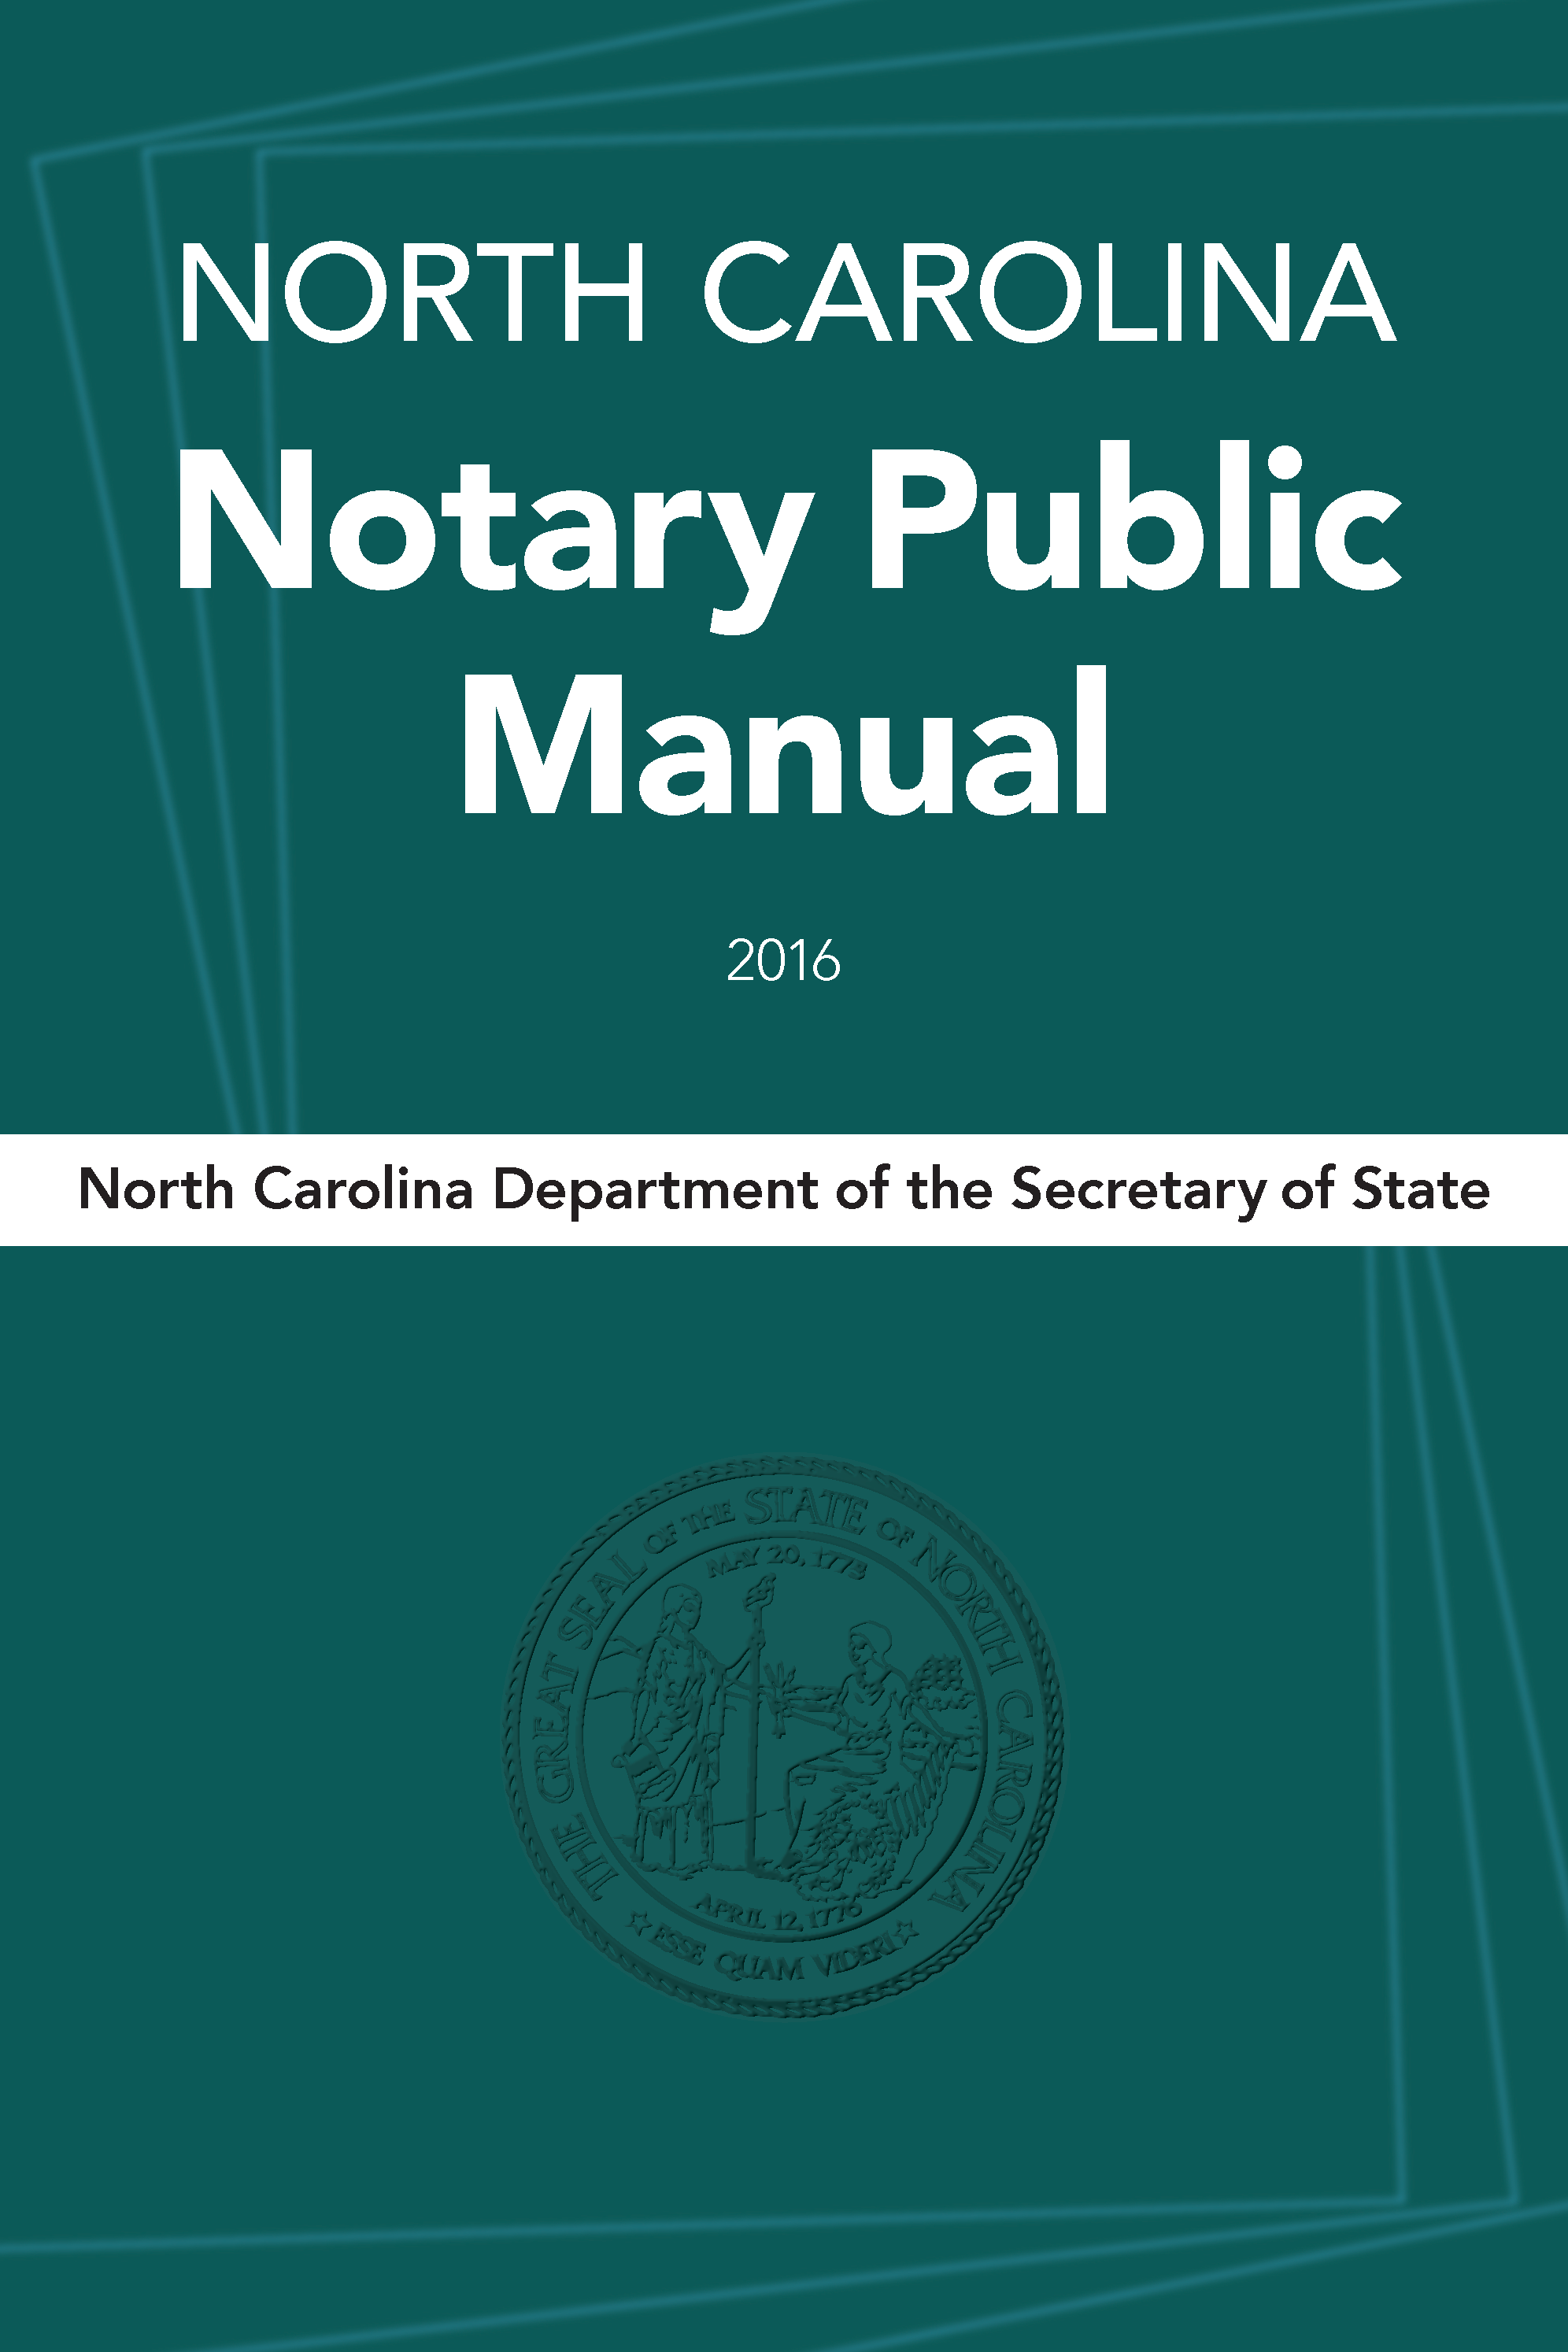 North Carolina Notary Public Manual